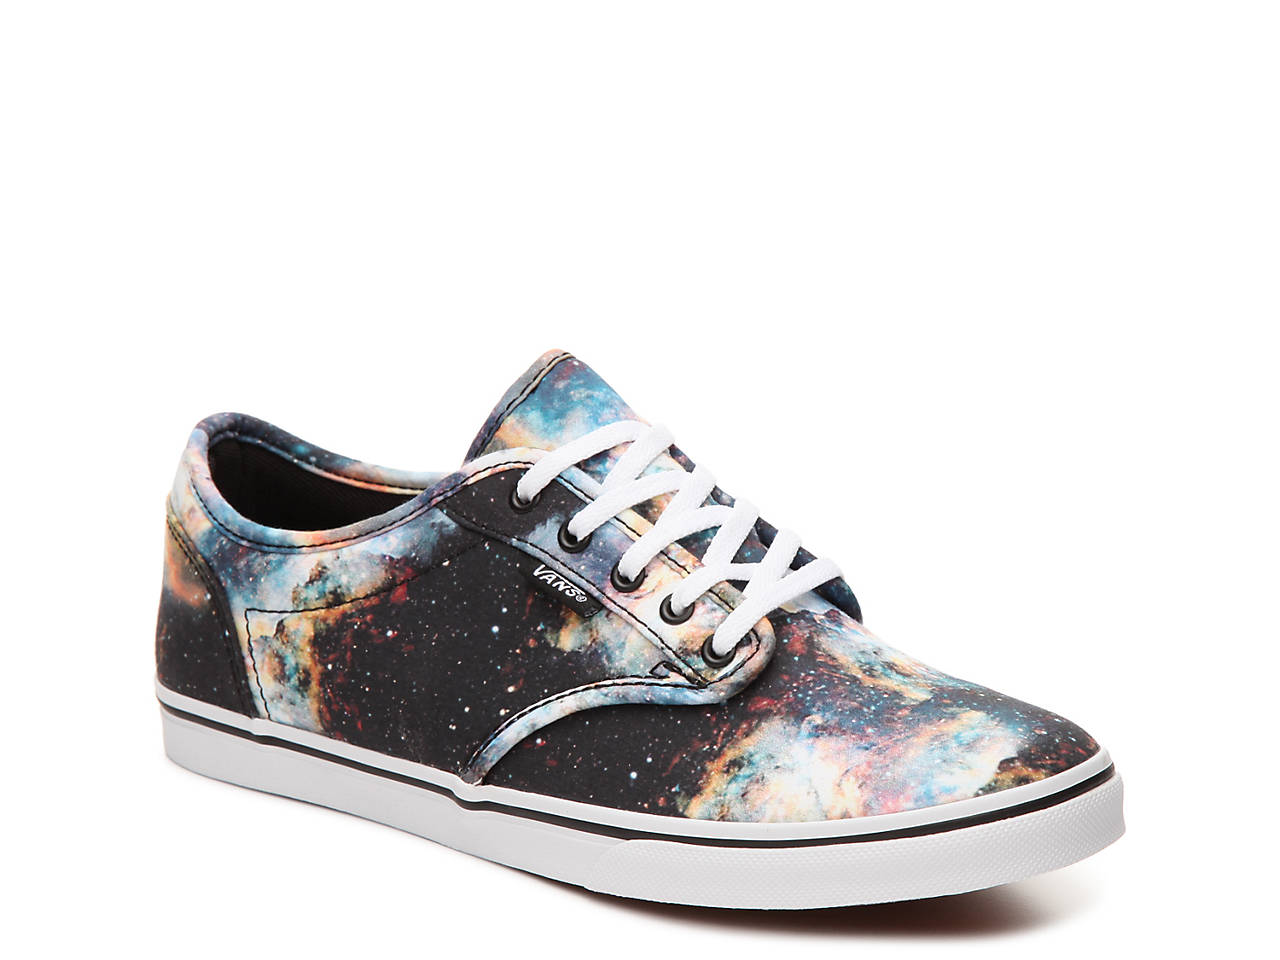 vans atwood shoes women